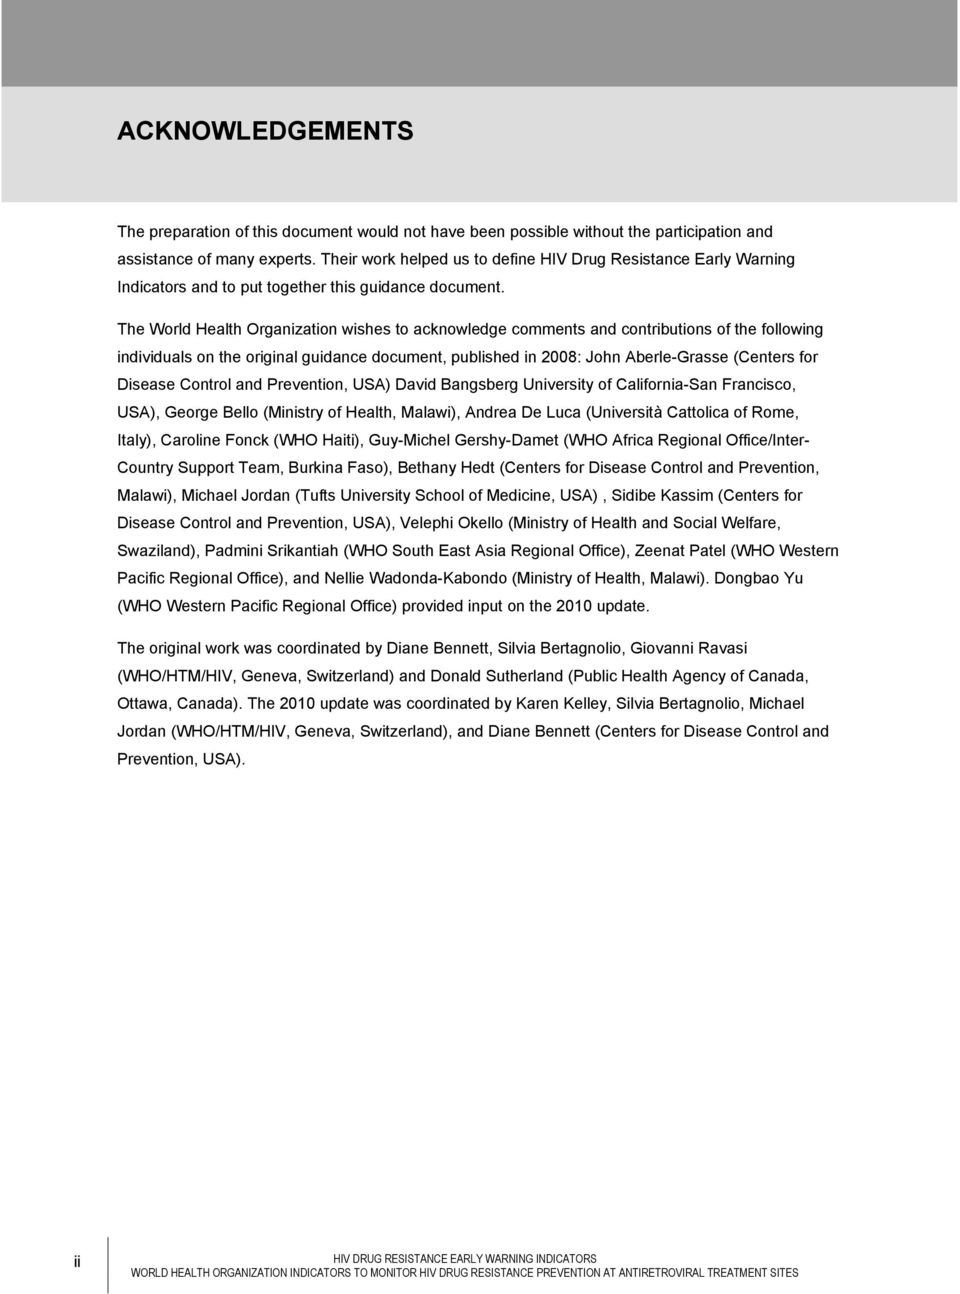 The World Health Organization wishes to acknowledge comments and contributions of the following individuals on the original guidance document, published in 2008: John Aberle-Grasse (Centers for